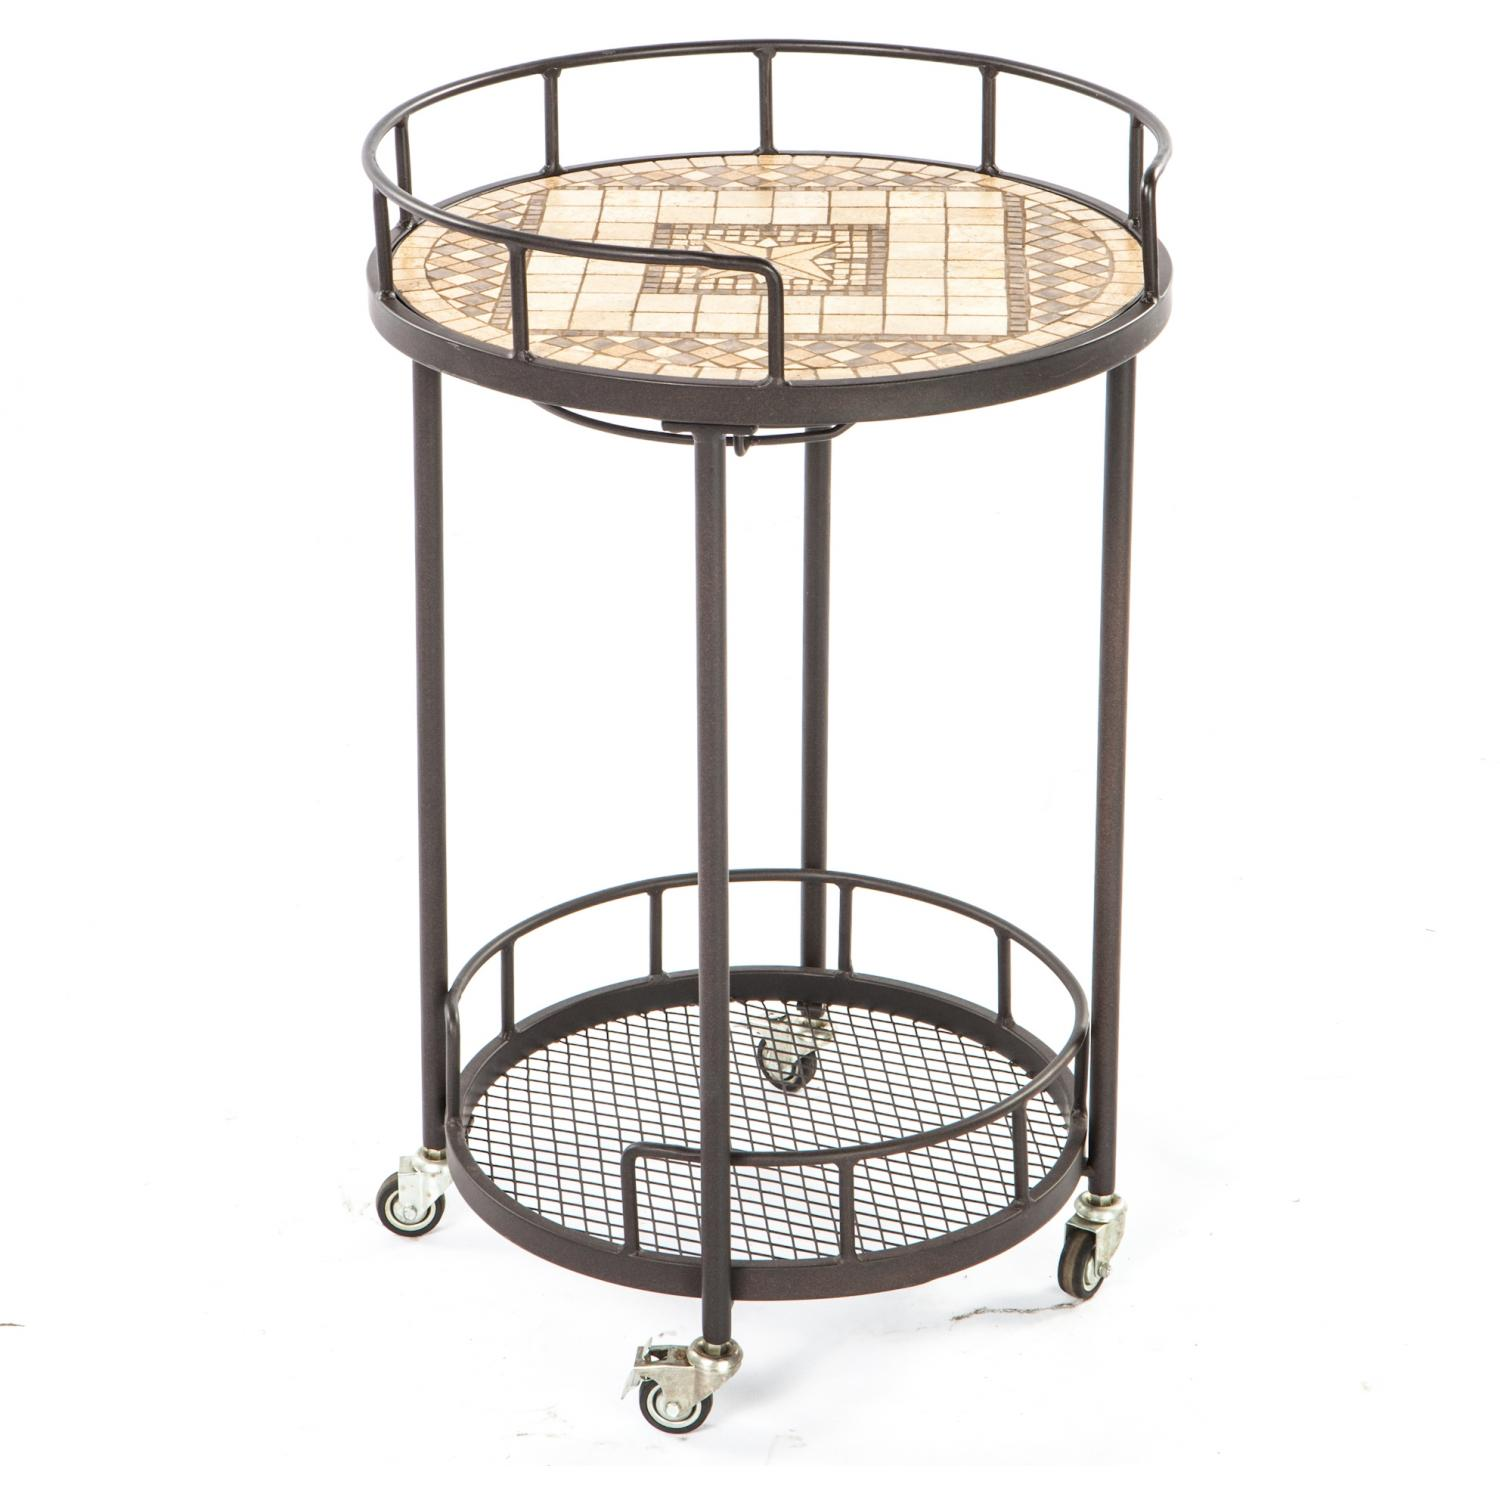 Alfresco Home Basilica Mosaic Outdoor Serving Cart at Sears.com